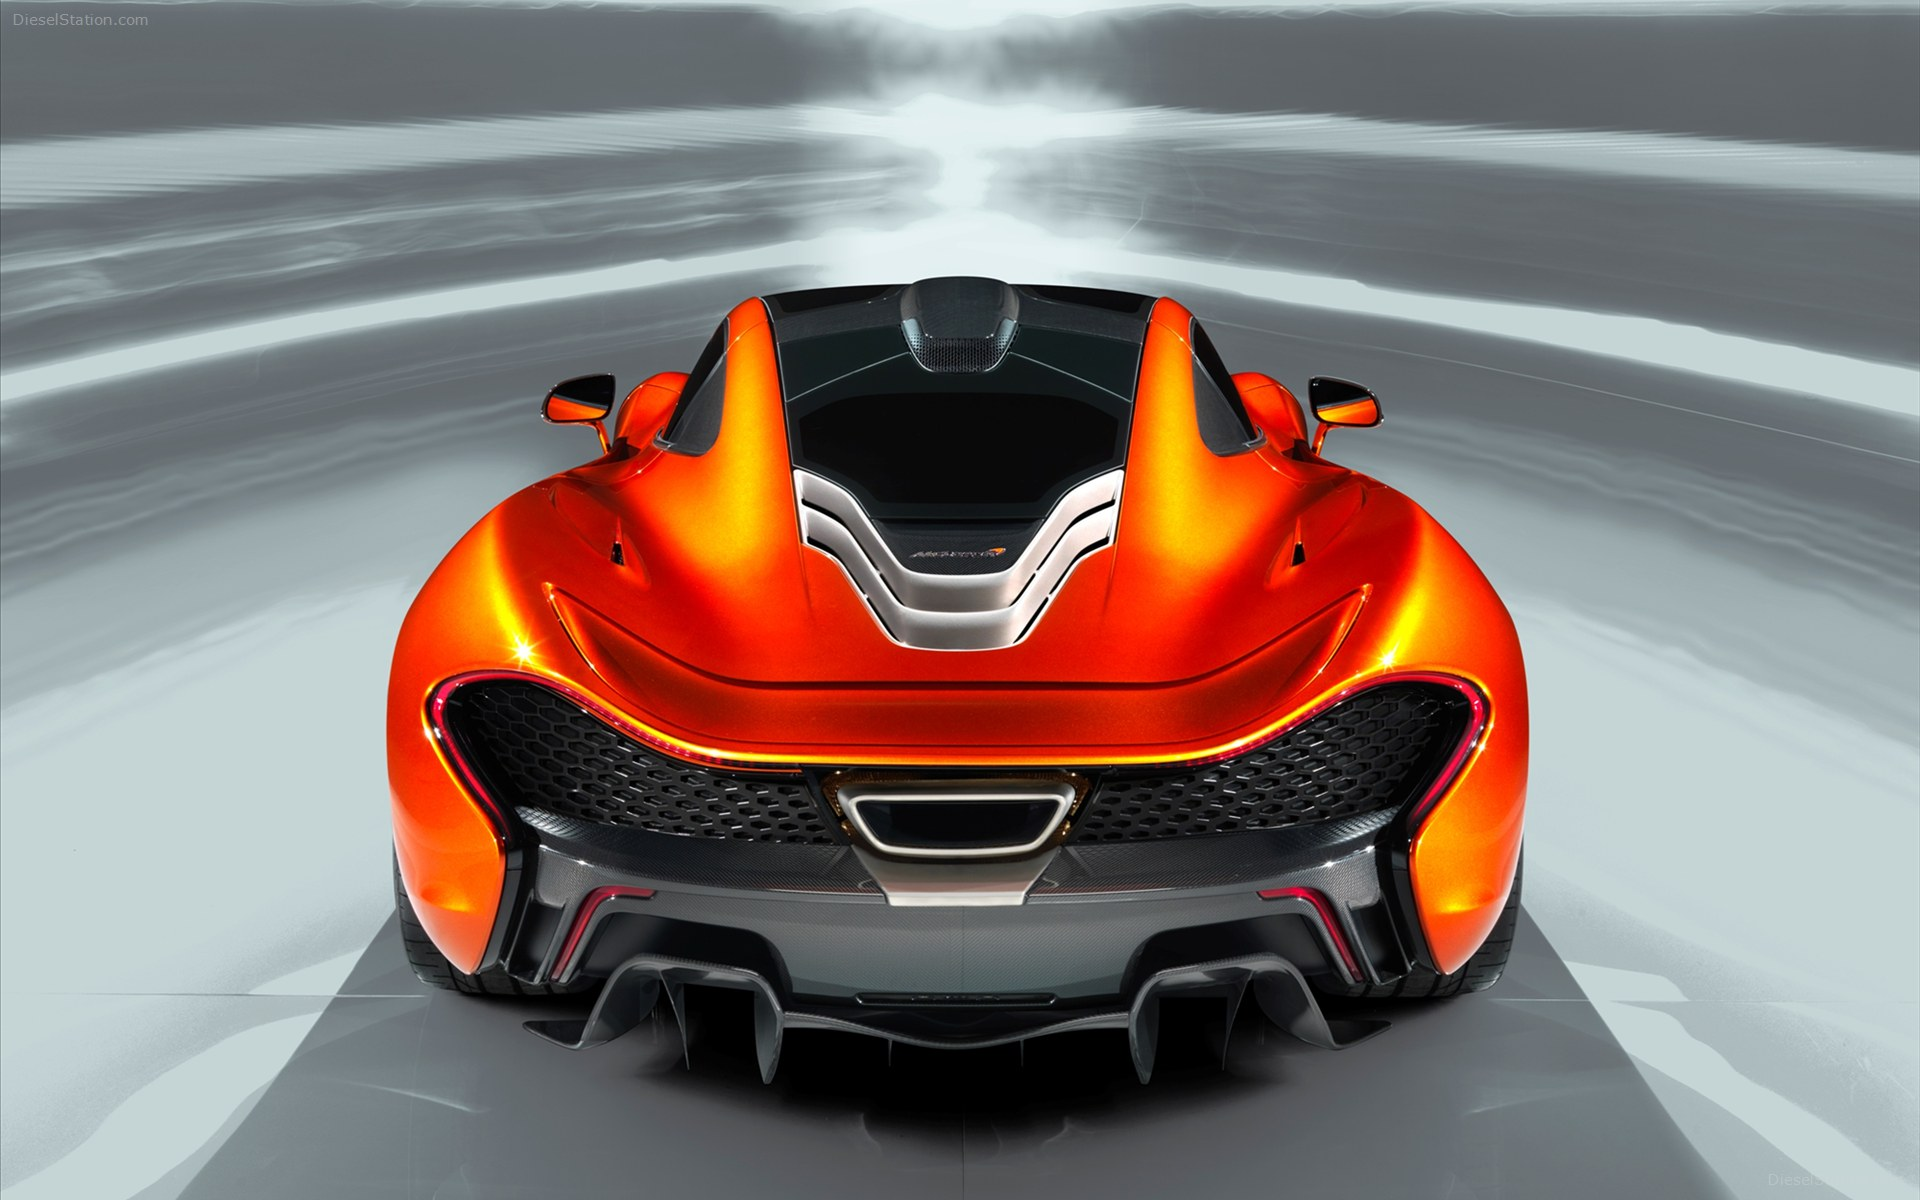 McLaren P1 Concept Wallpaper HD Download